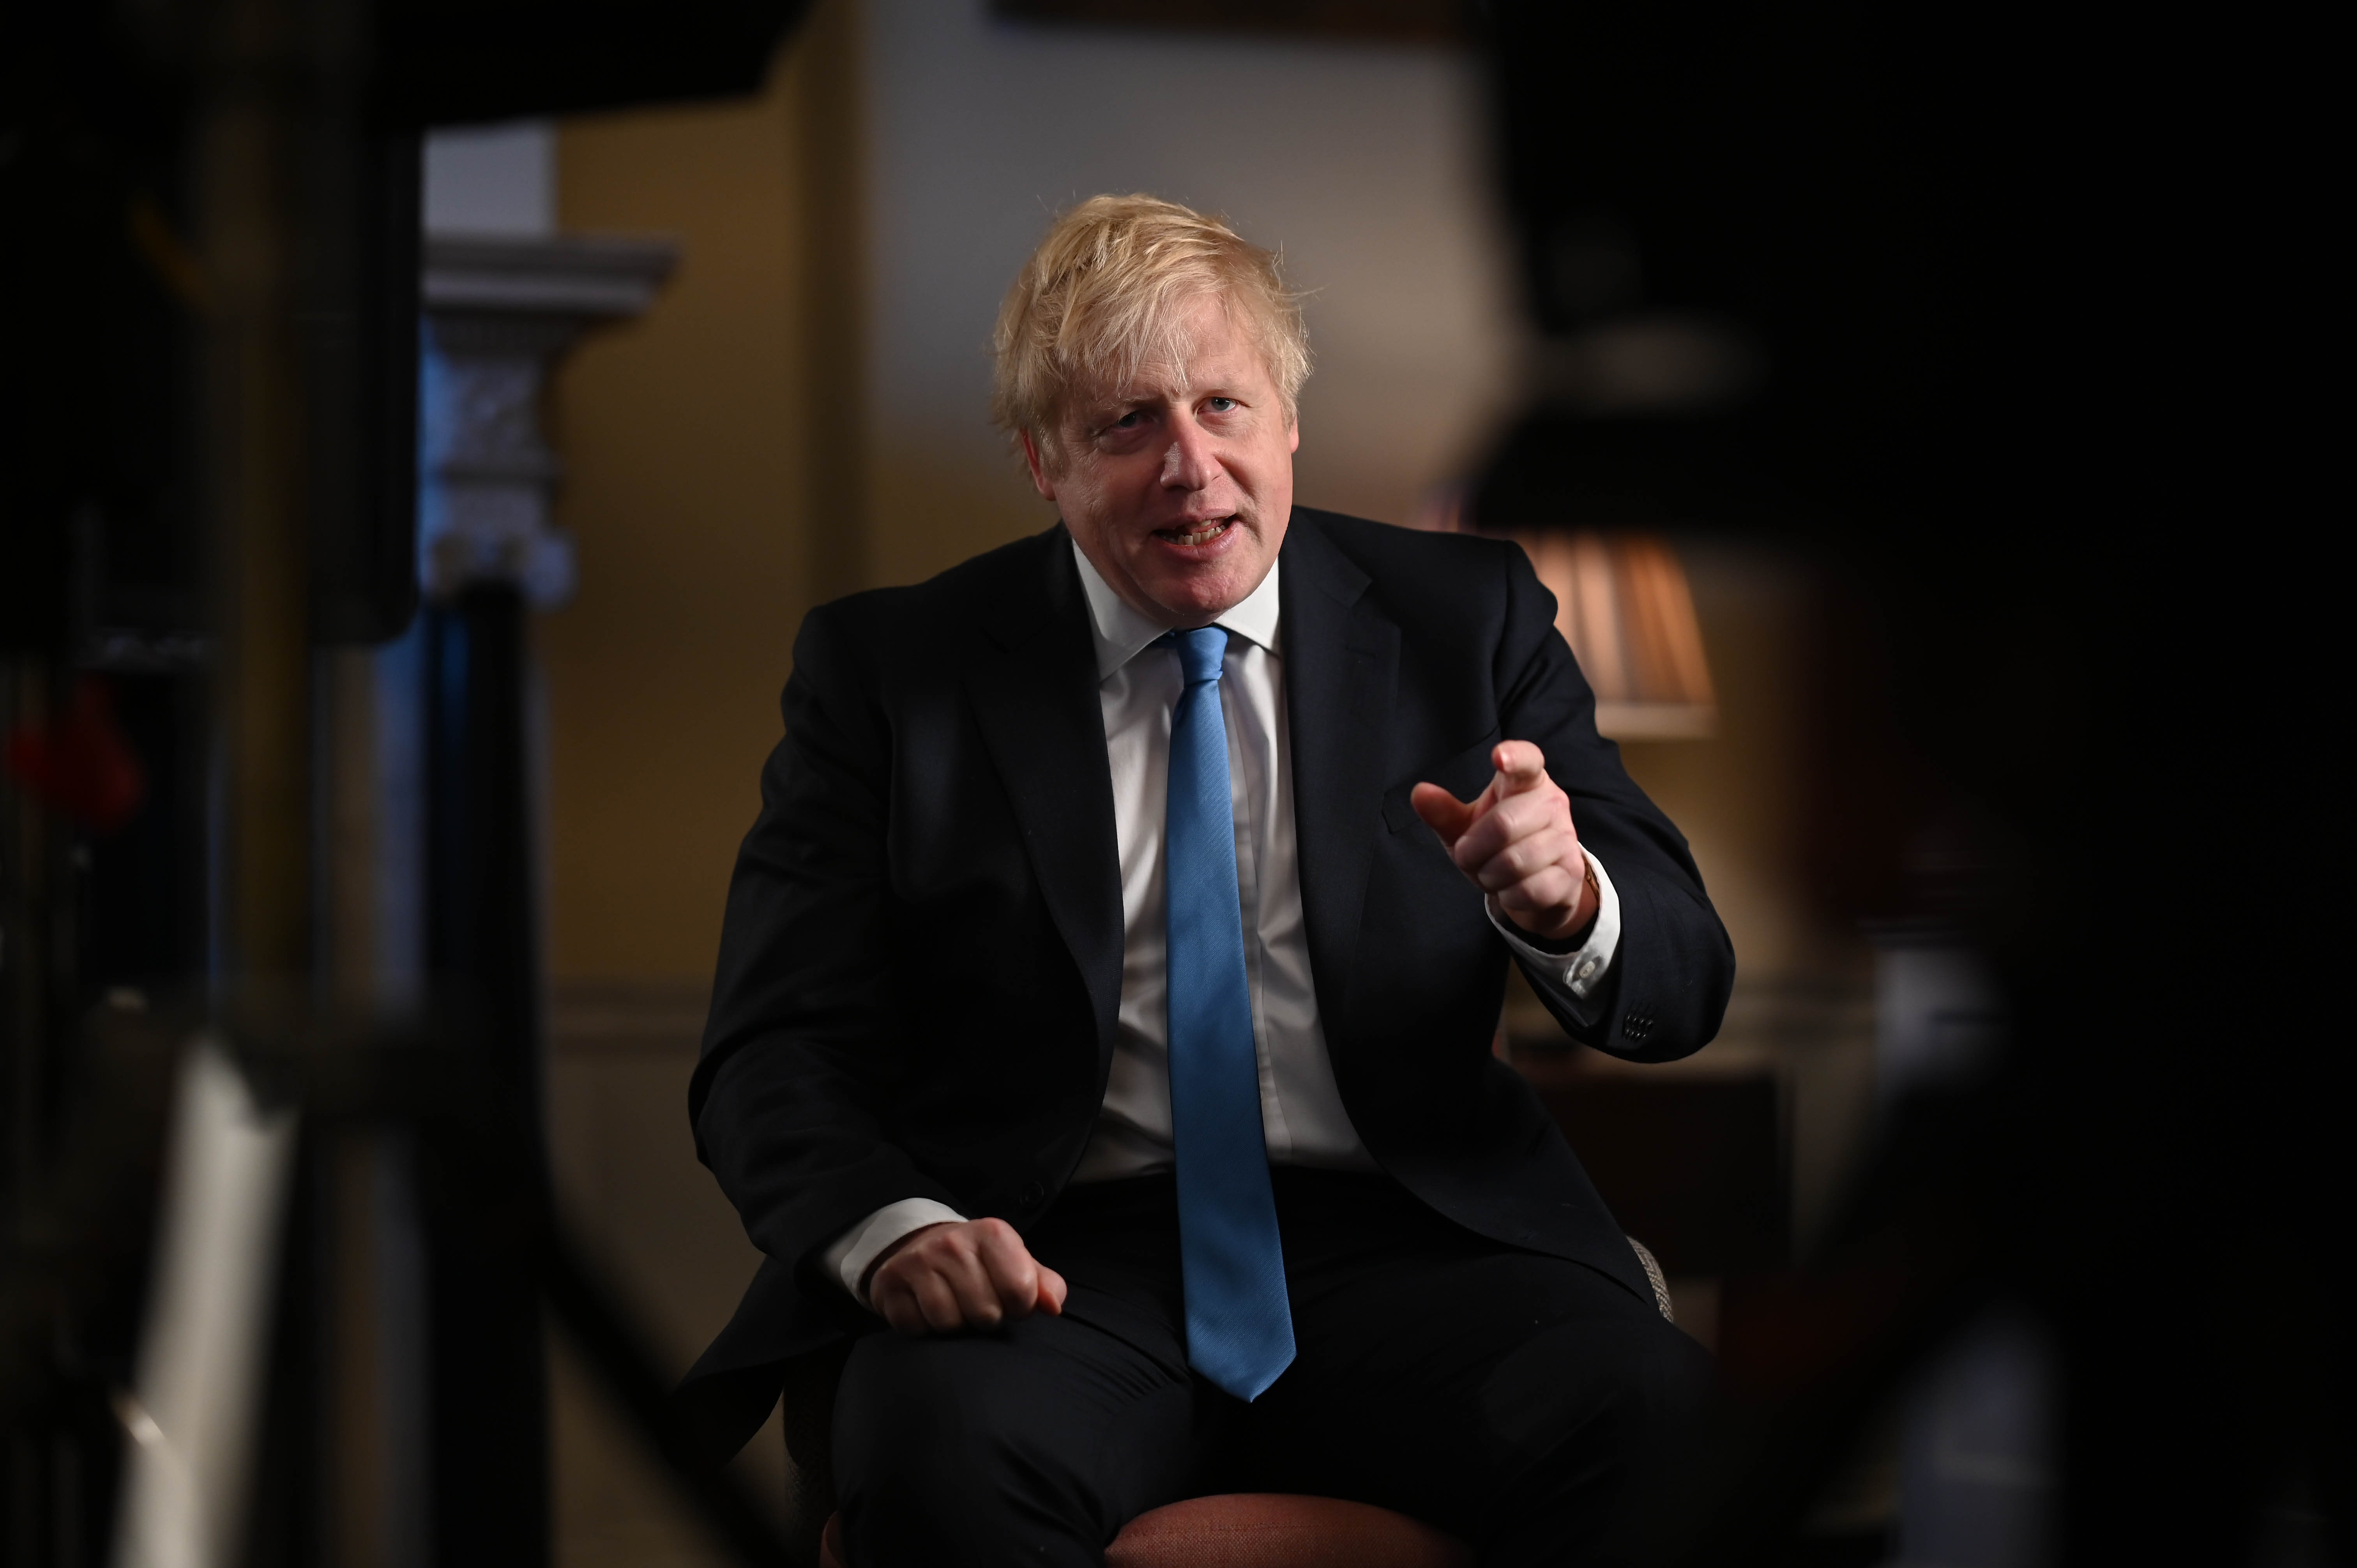 Prime Minister Boris Johnson in the study at No10 Downing Street, filming his address to the Nation on leaving the EU on January 31st. © Number 10/Flickr